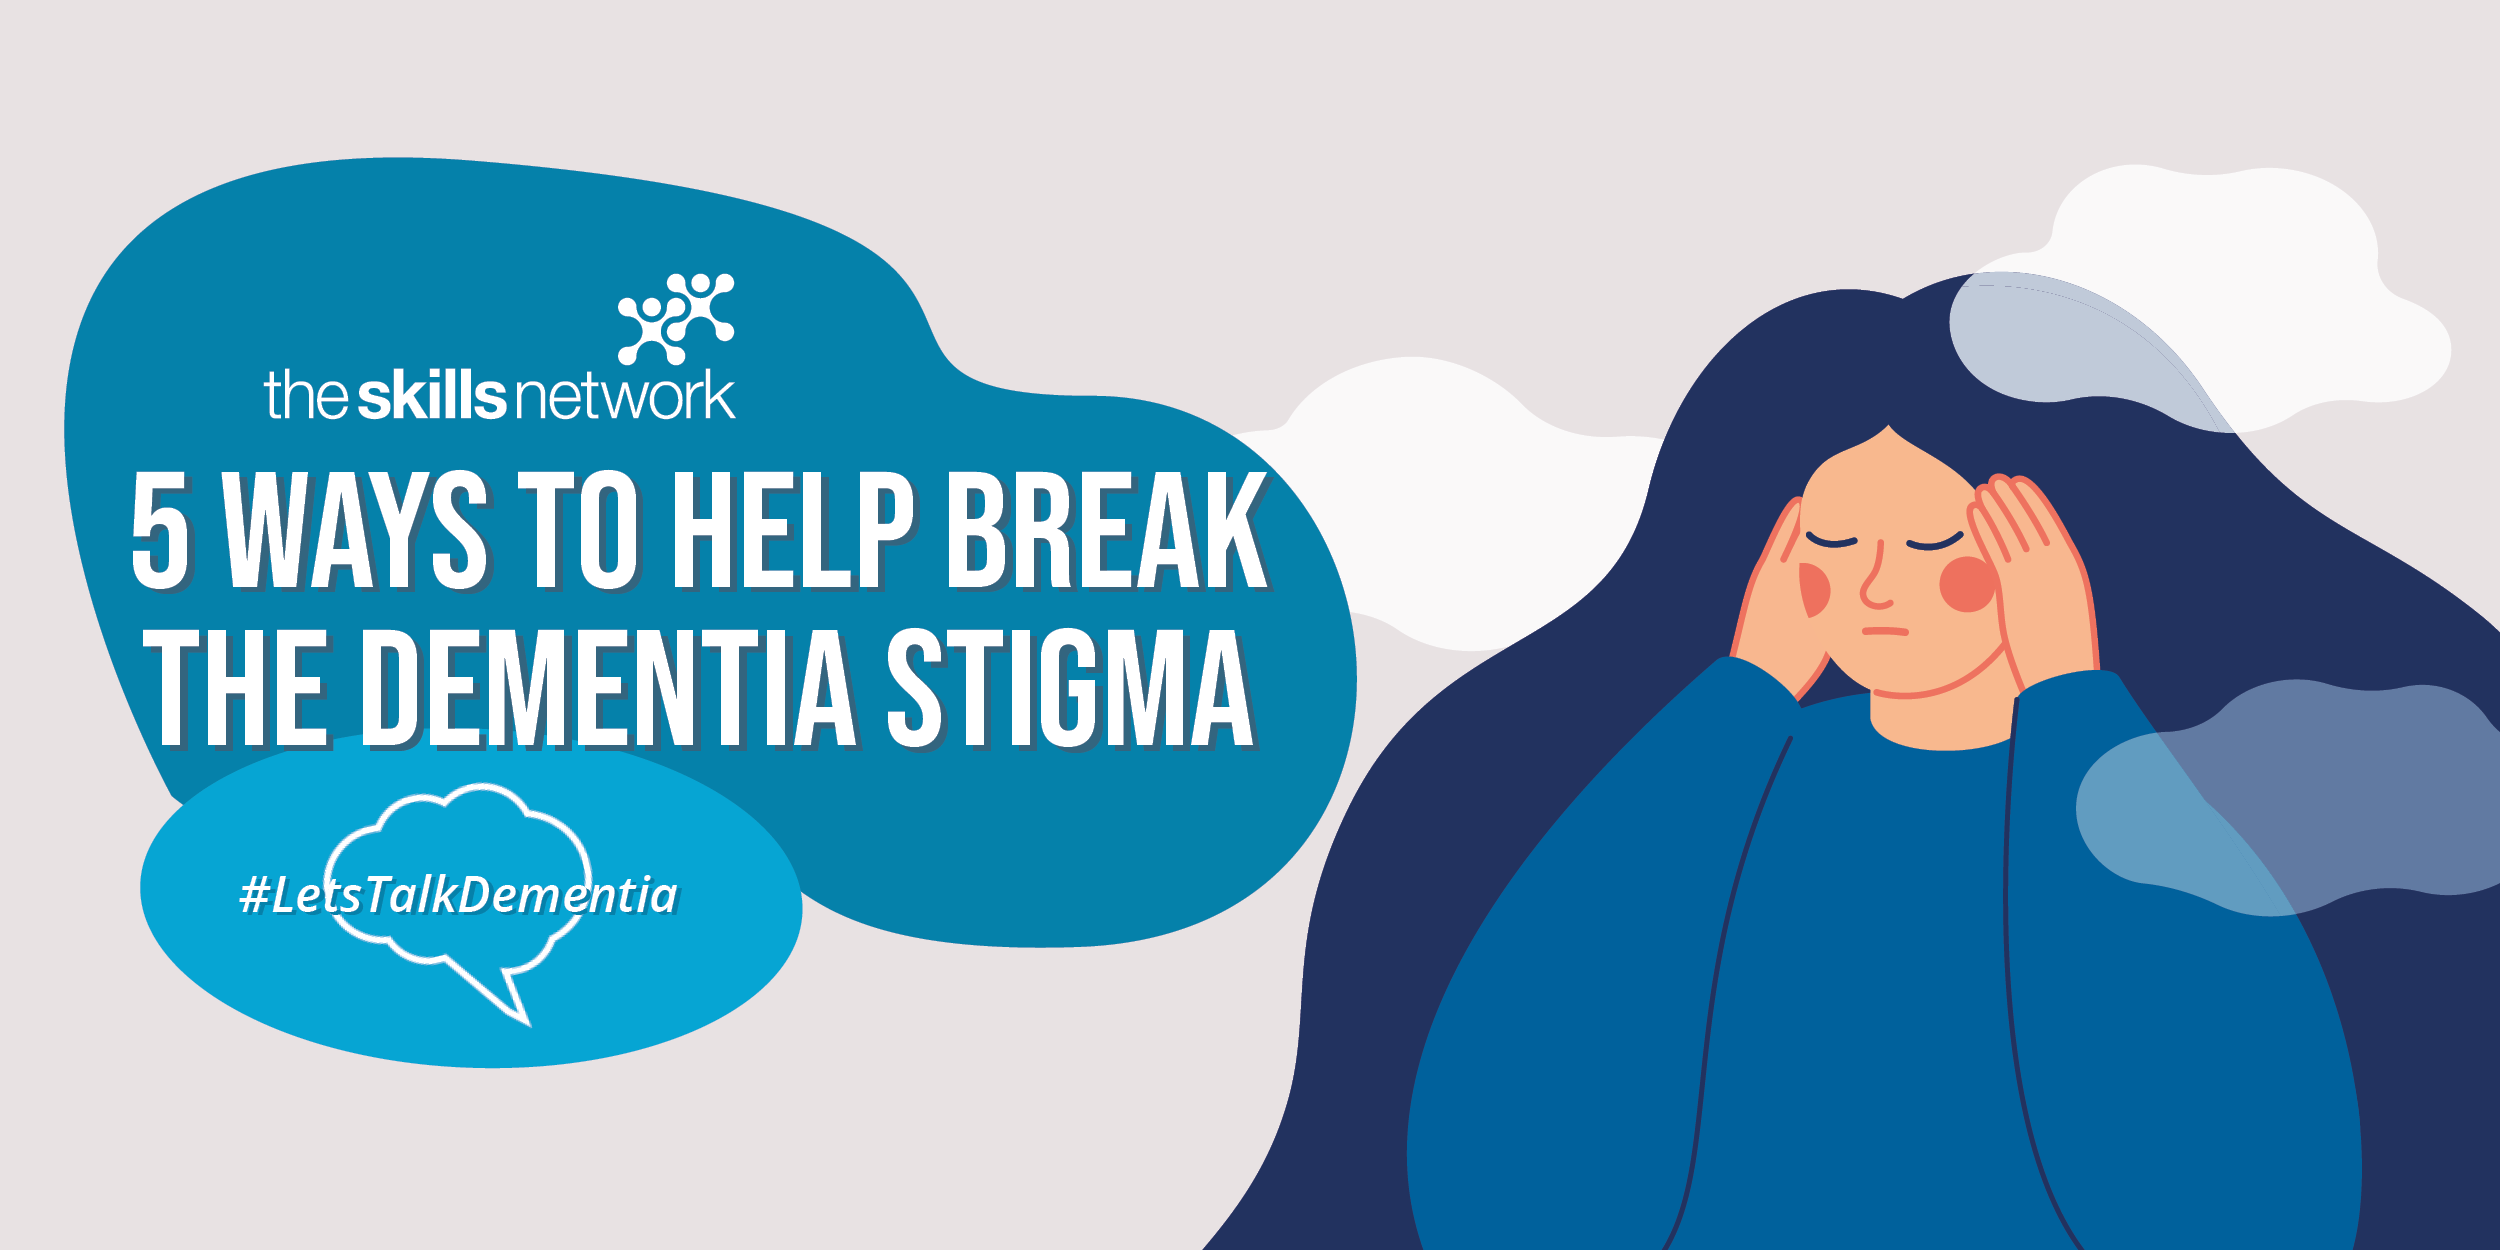 5 ways to help break the stigma around dementia